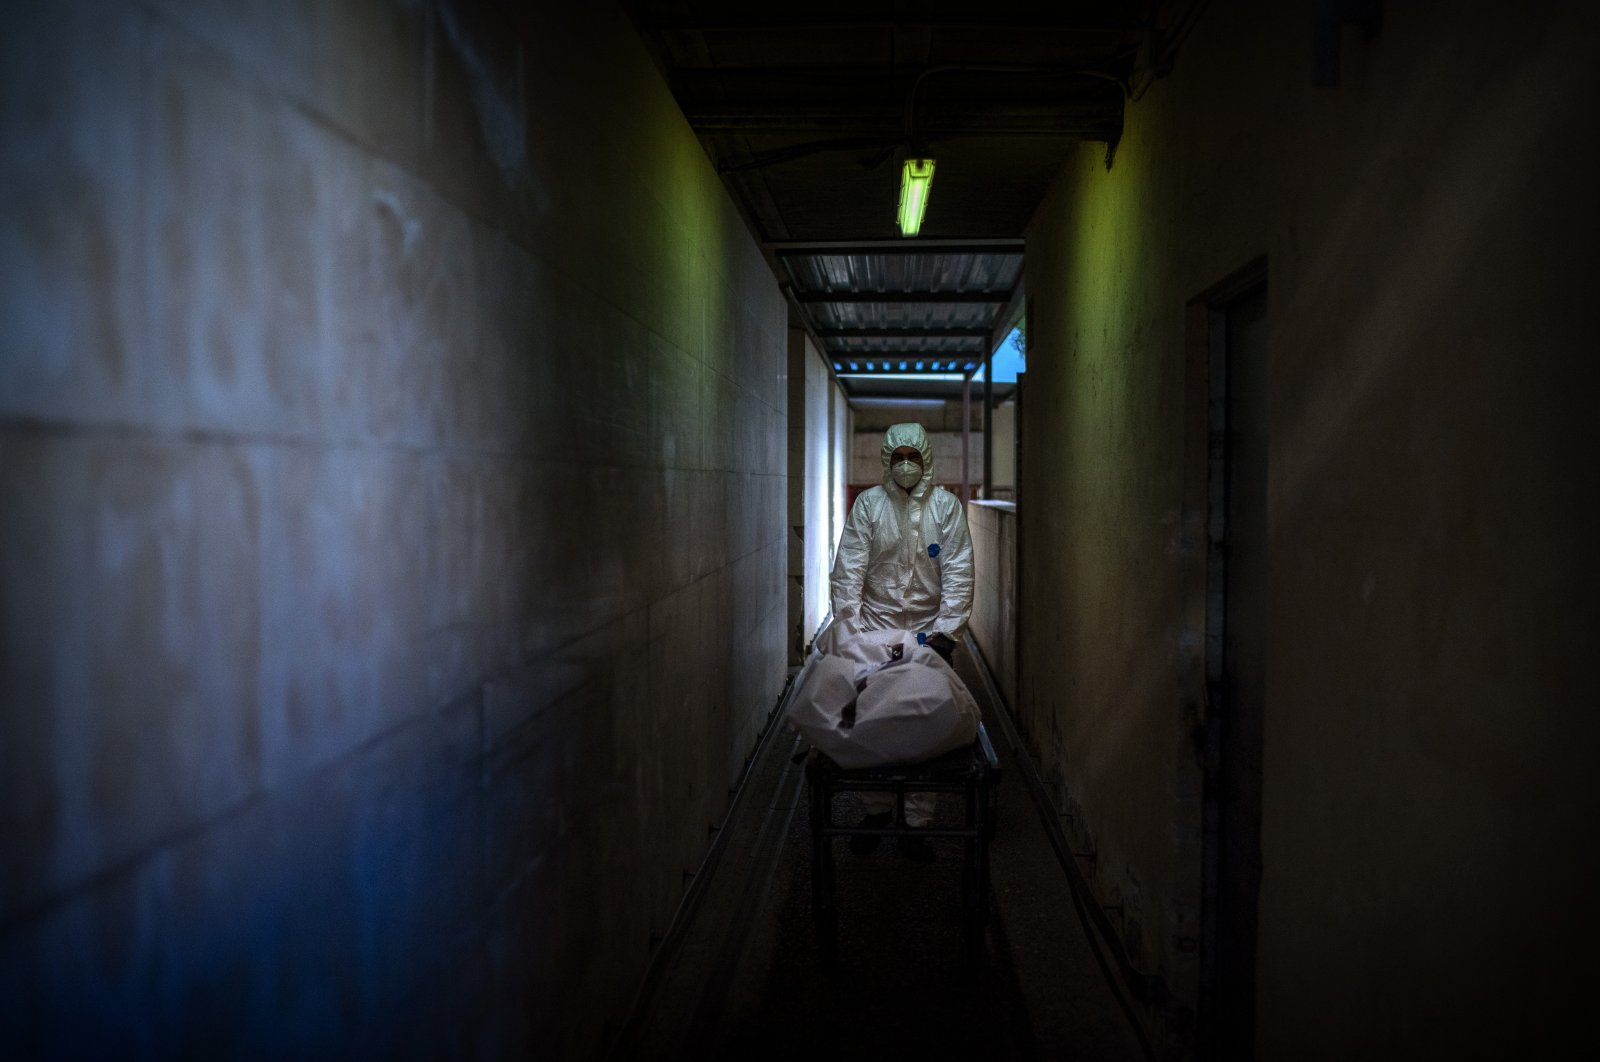 A mortuary worker transports the body of a COVID-19 victim on a stretcher at the morgue of a hospital in Barcelona, Spain, Nov. 5, 2020. (AP Photo)